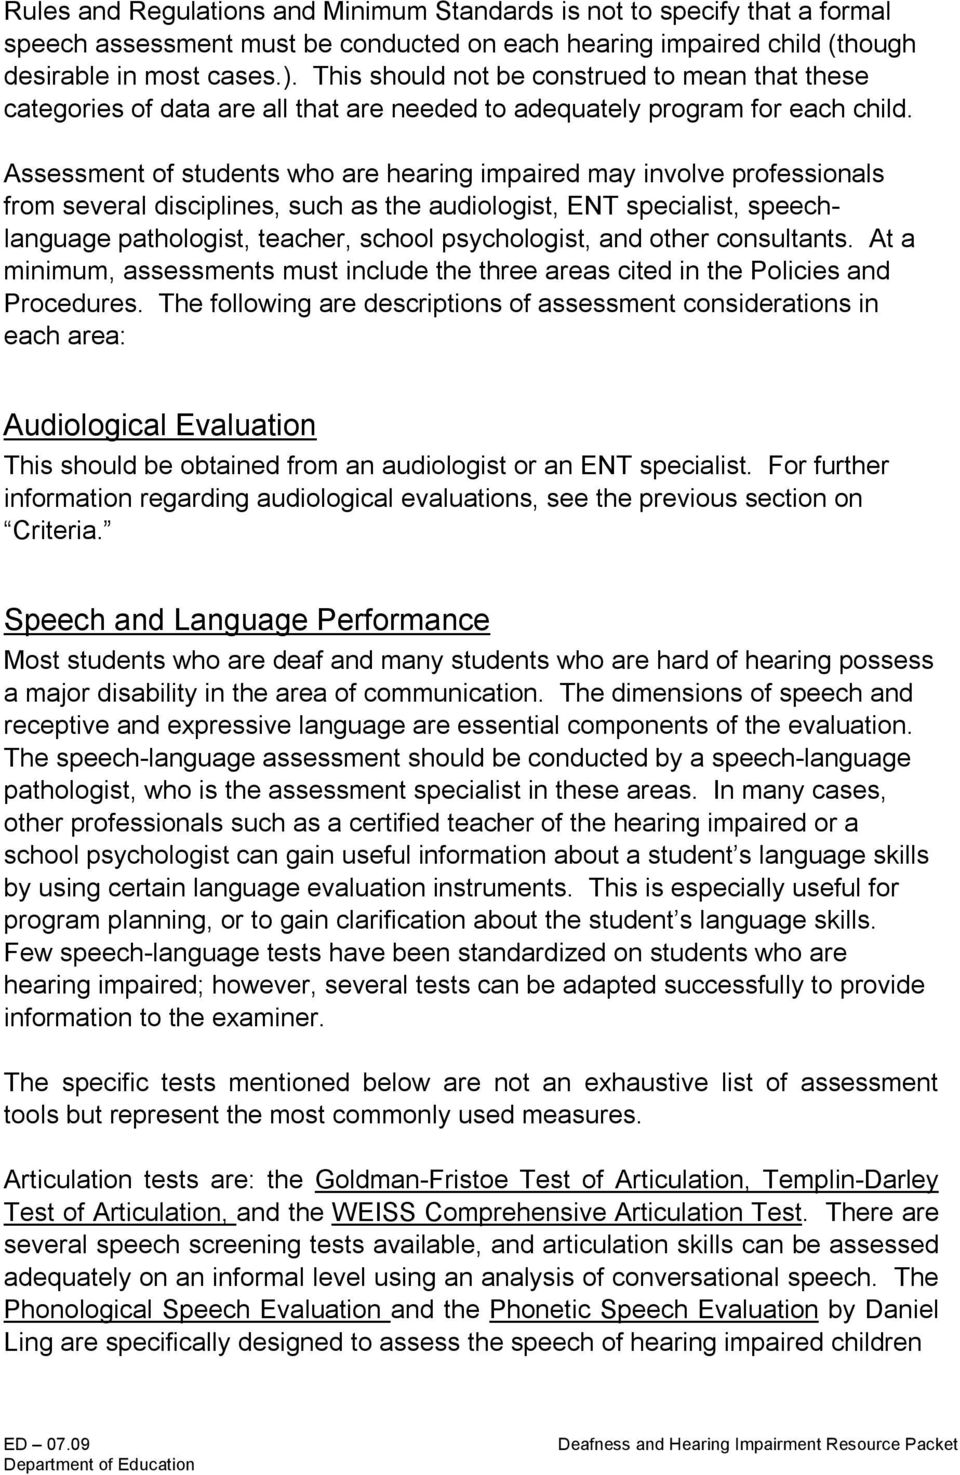 Assessment of students who are hearing impaired may involve professionals from several disciplines, such as the audiologist, ENT specialist, speechlanguage pathologist, teacher, school psychologist,